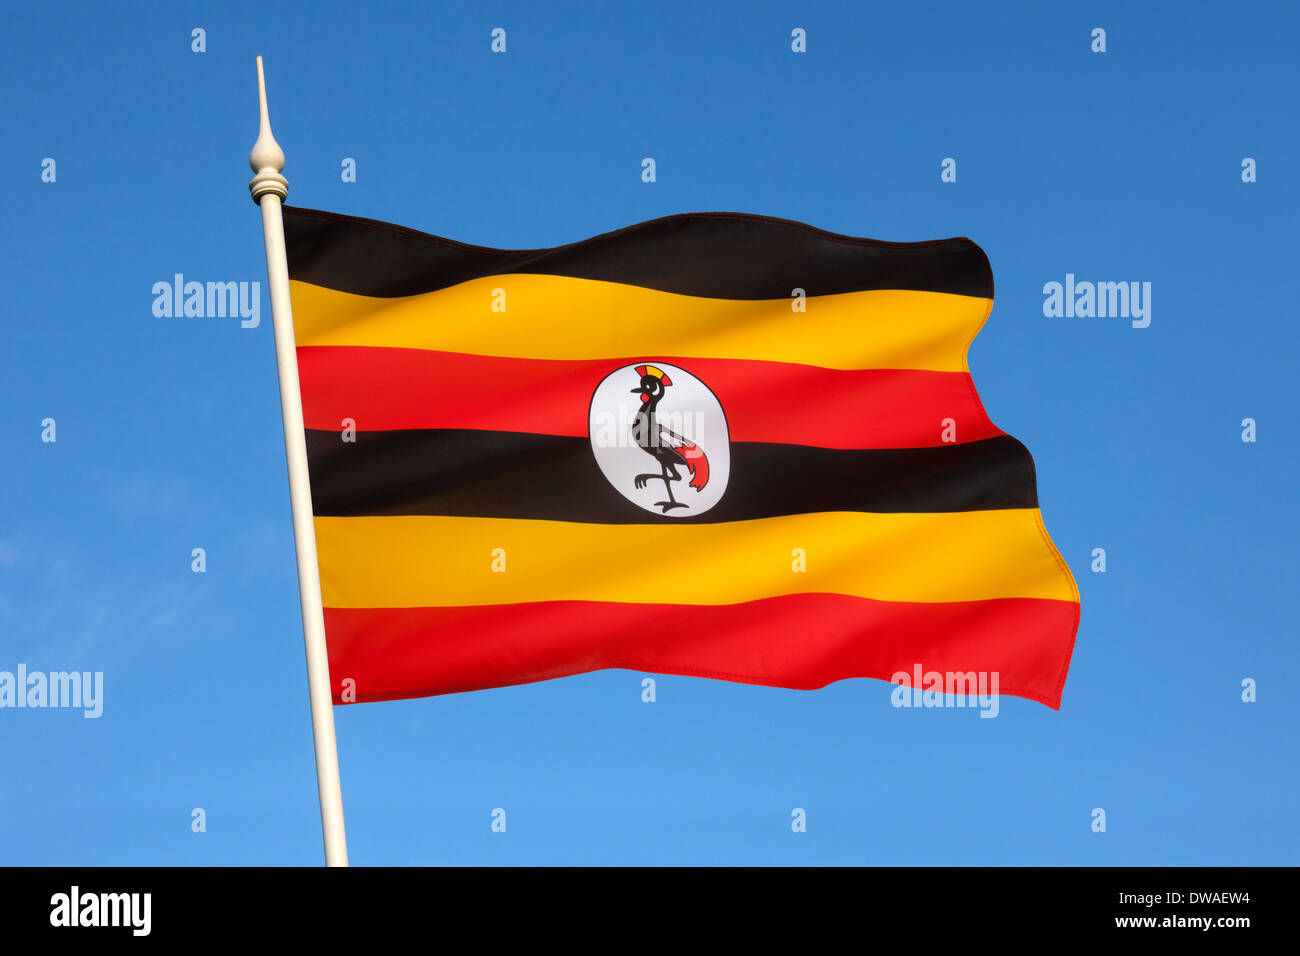 Drapeau de l'Ouganda Photo Stock